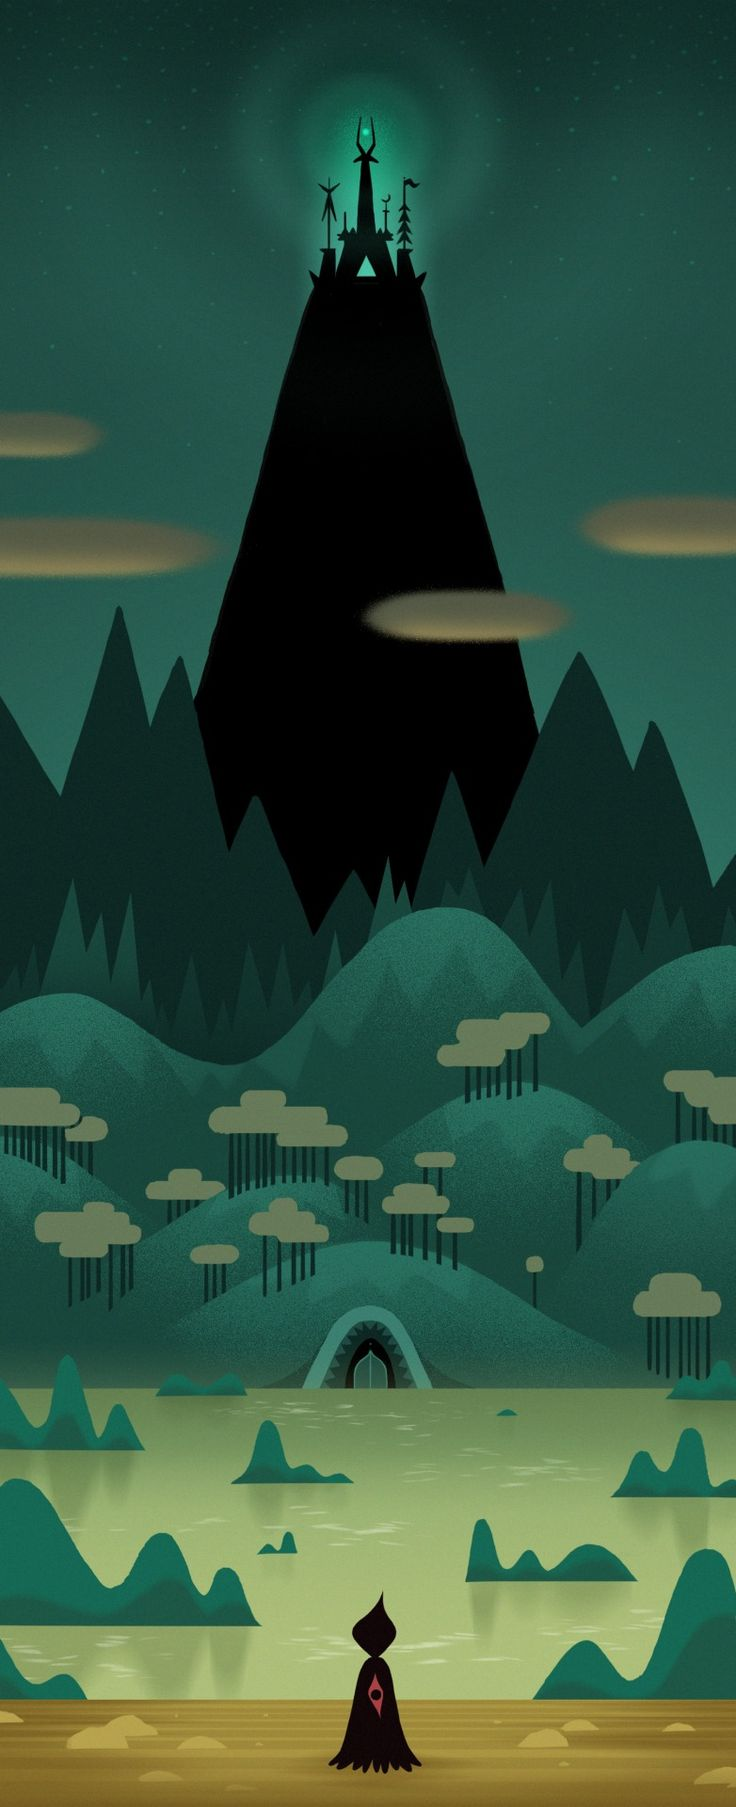 Trying to create backgrounds with simple shapes and colour palettes